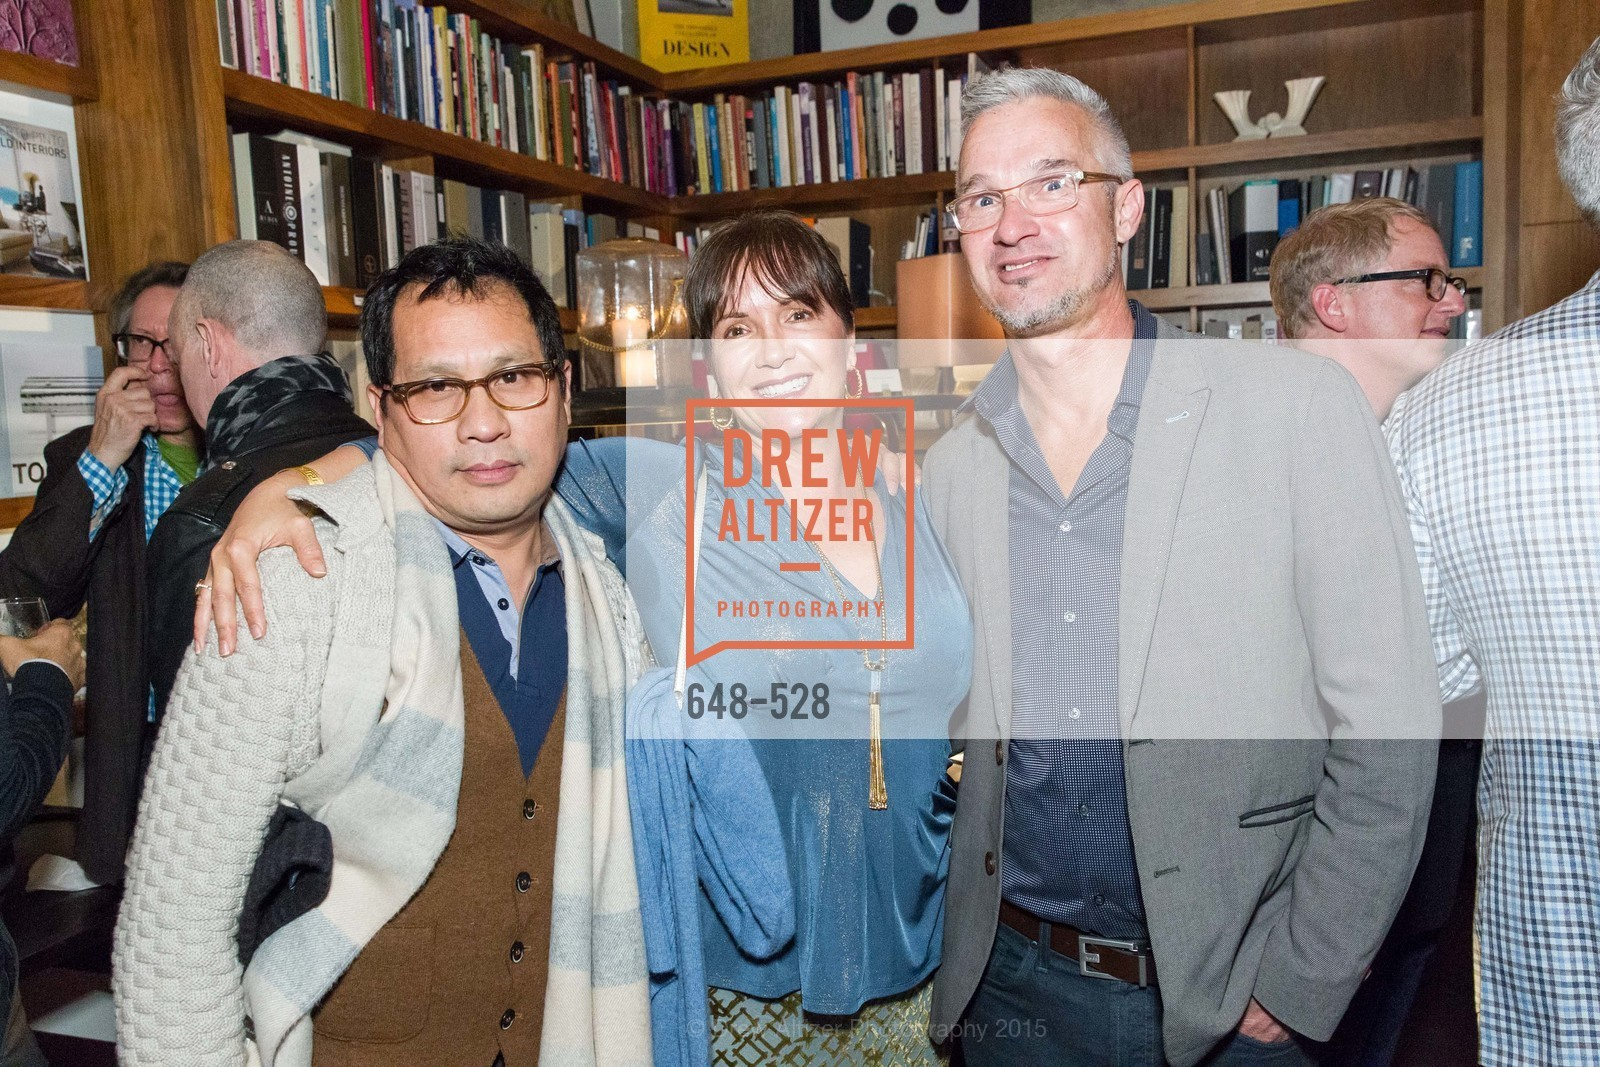 Gioi Tran, Claudia Juestel, Willem Racke, Jay Jeffers for Arteriors Launch, Jay Jeffers - The Store. 1035 Post St, November 12th, 2015,Drew Altizer, Drew Altizer Photography, full-service agency, private events, San Francisco photographer, photographer california